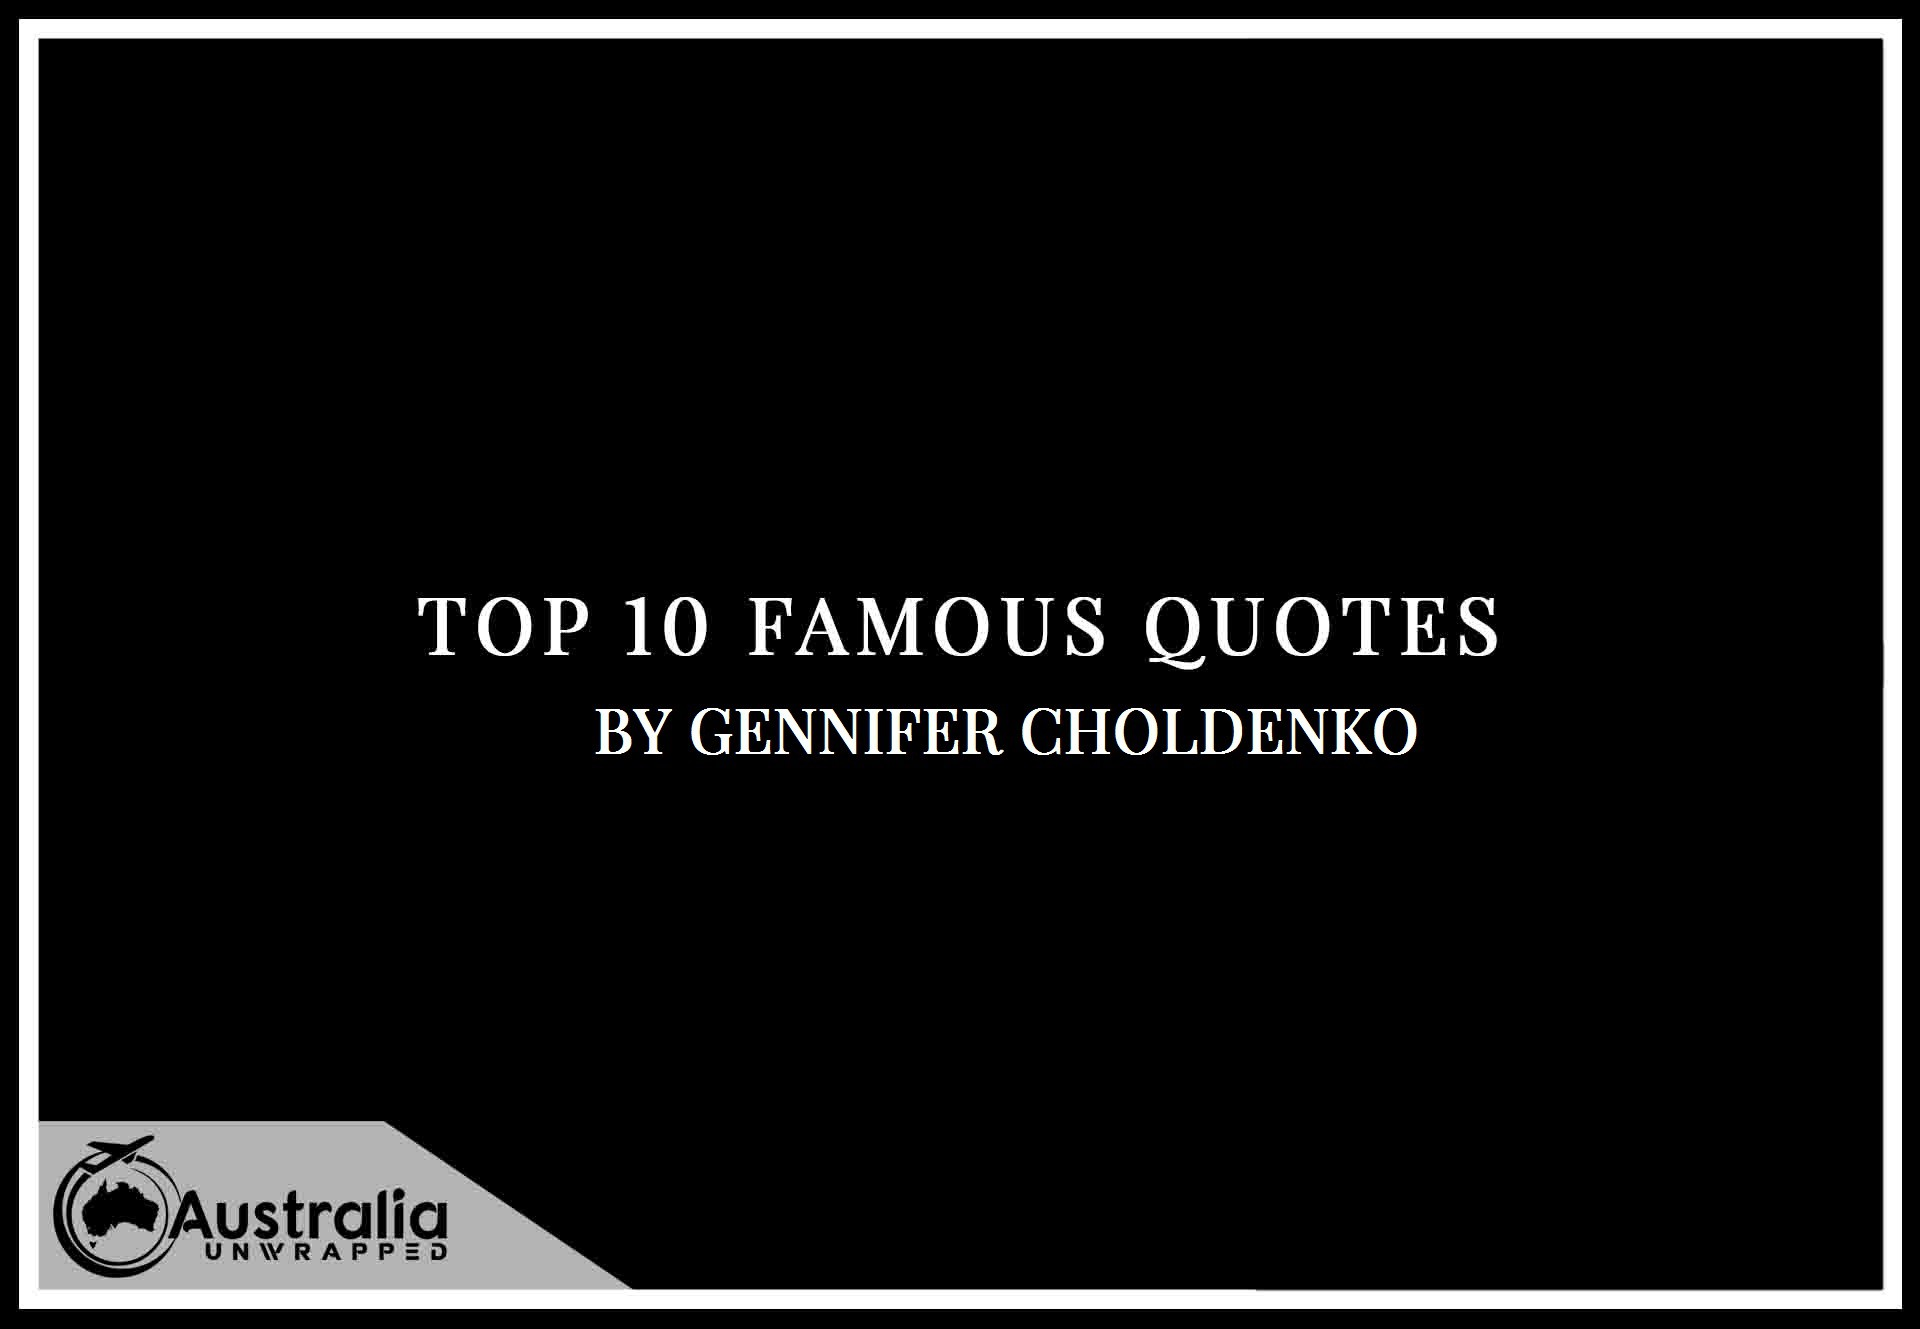 Gennifer Choldenko's Top 10 Popular and Famous Quotes